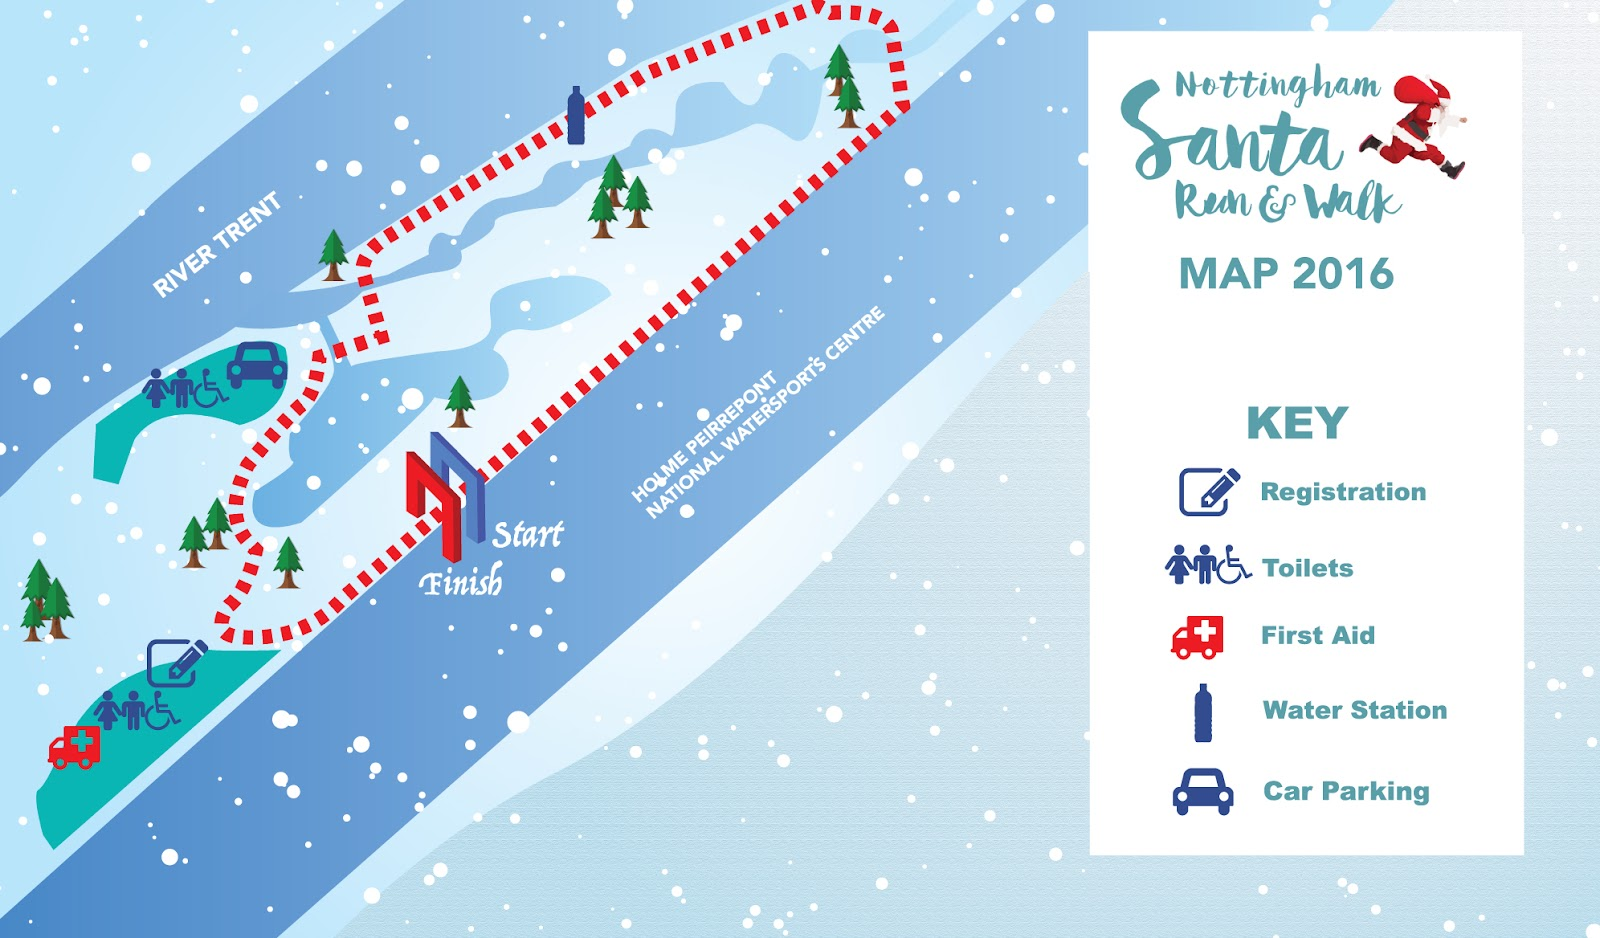 Water-Sports-Santa-run-map.jpg